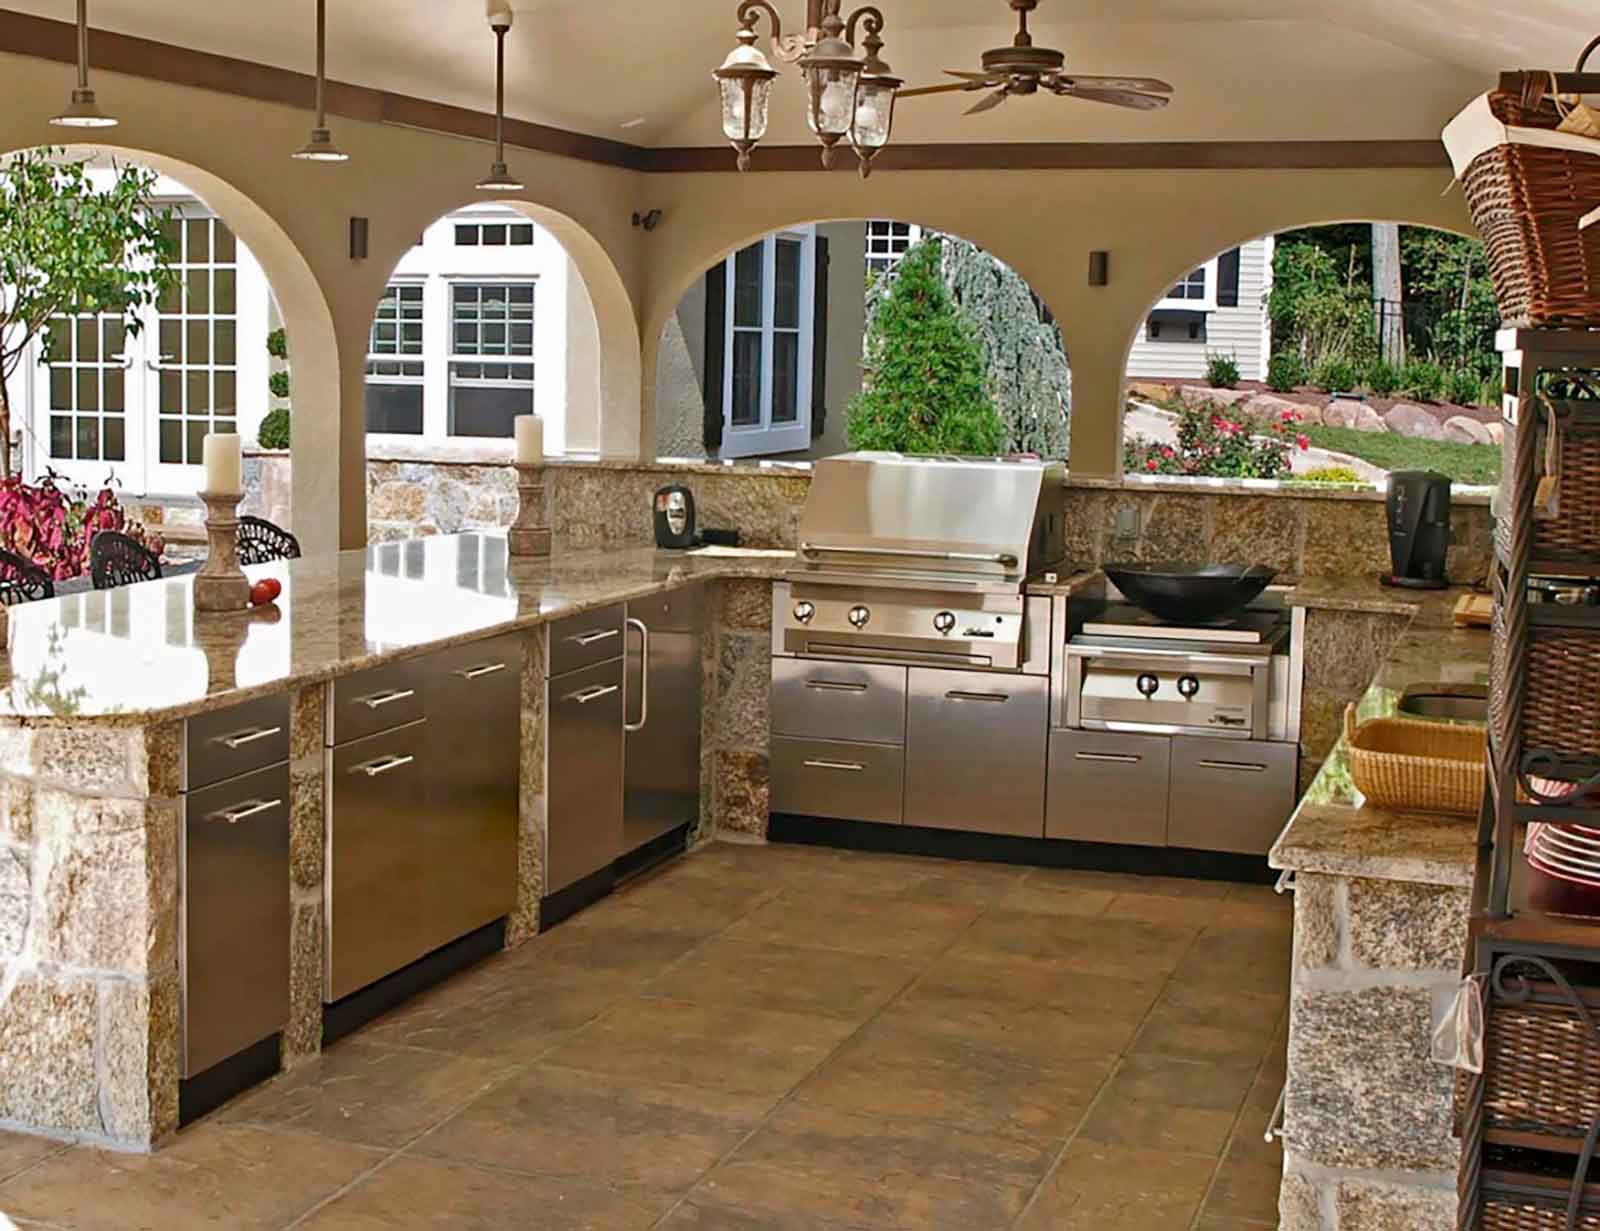 Luxury Outdoor Kitchen And Built In Appliances